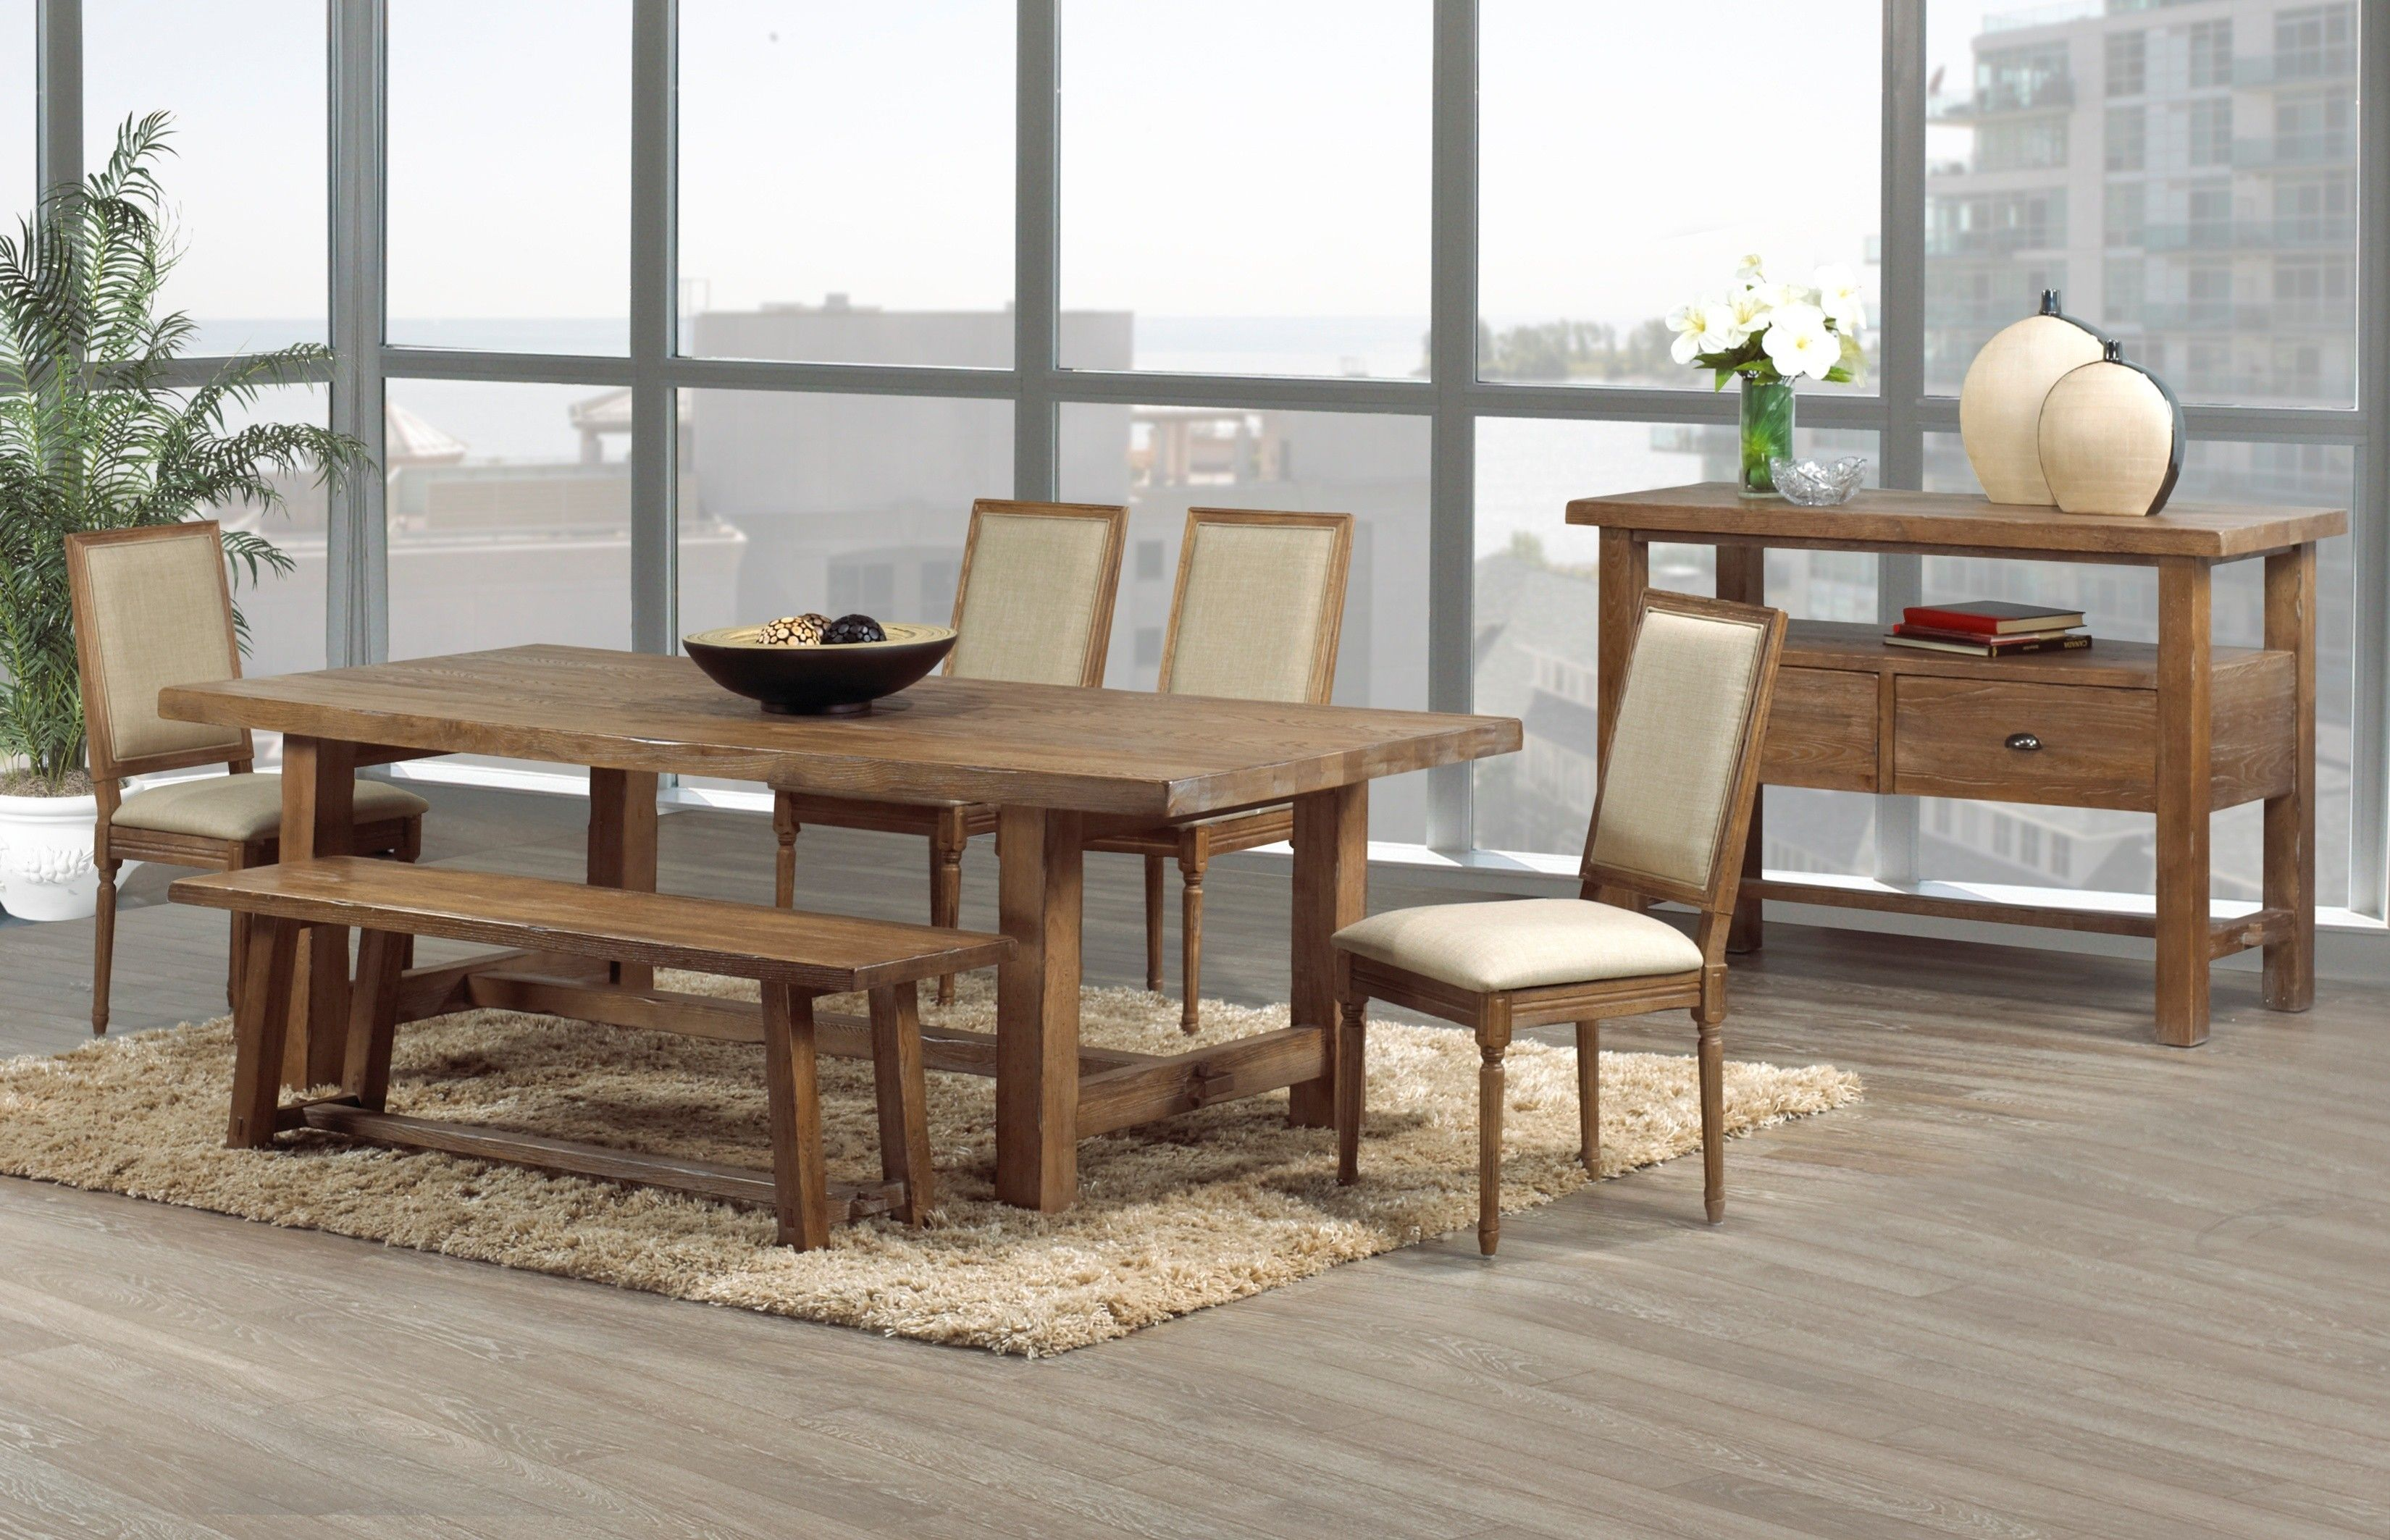 Groovy Rustic Modern Dining Room Furniture Dining Rooms Rustic Ncnpc Chair Design For Home Ncnpcorg